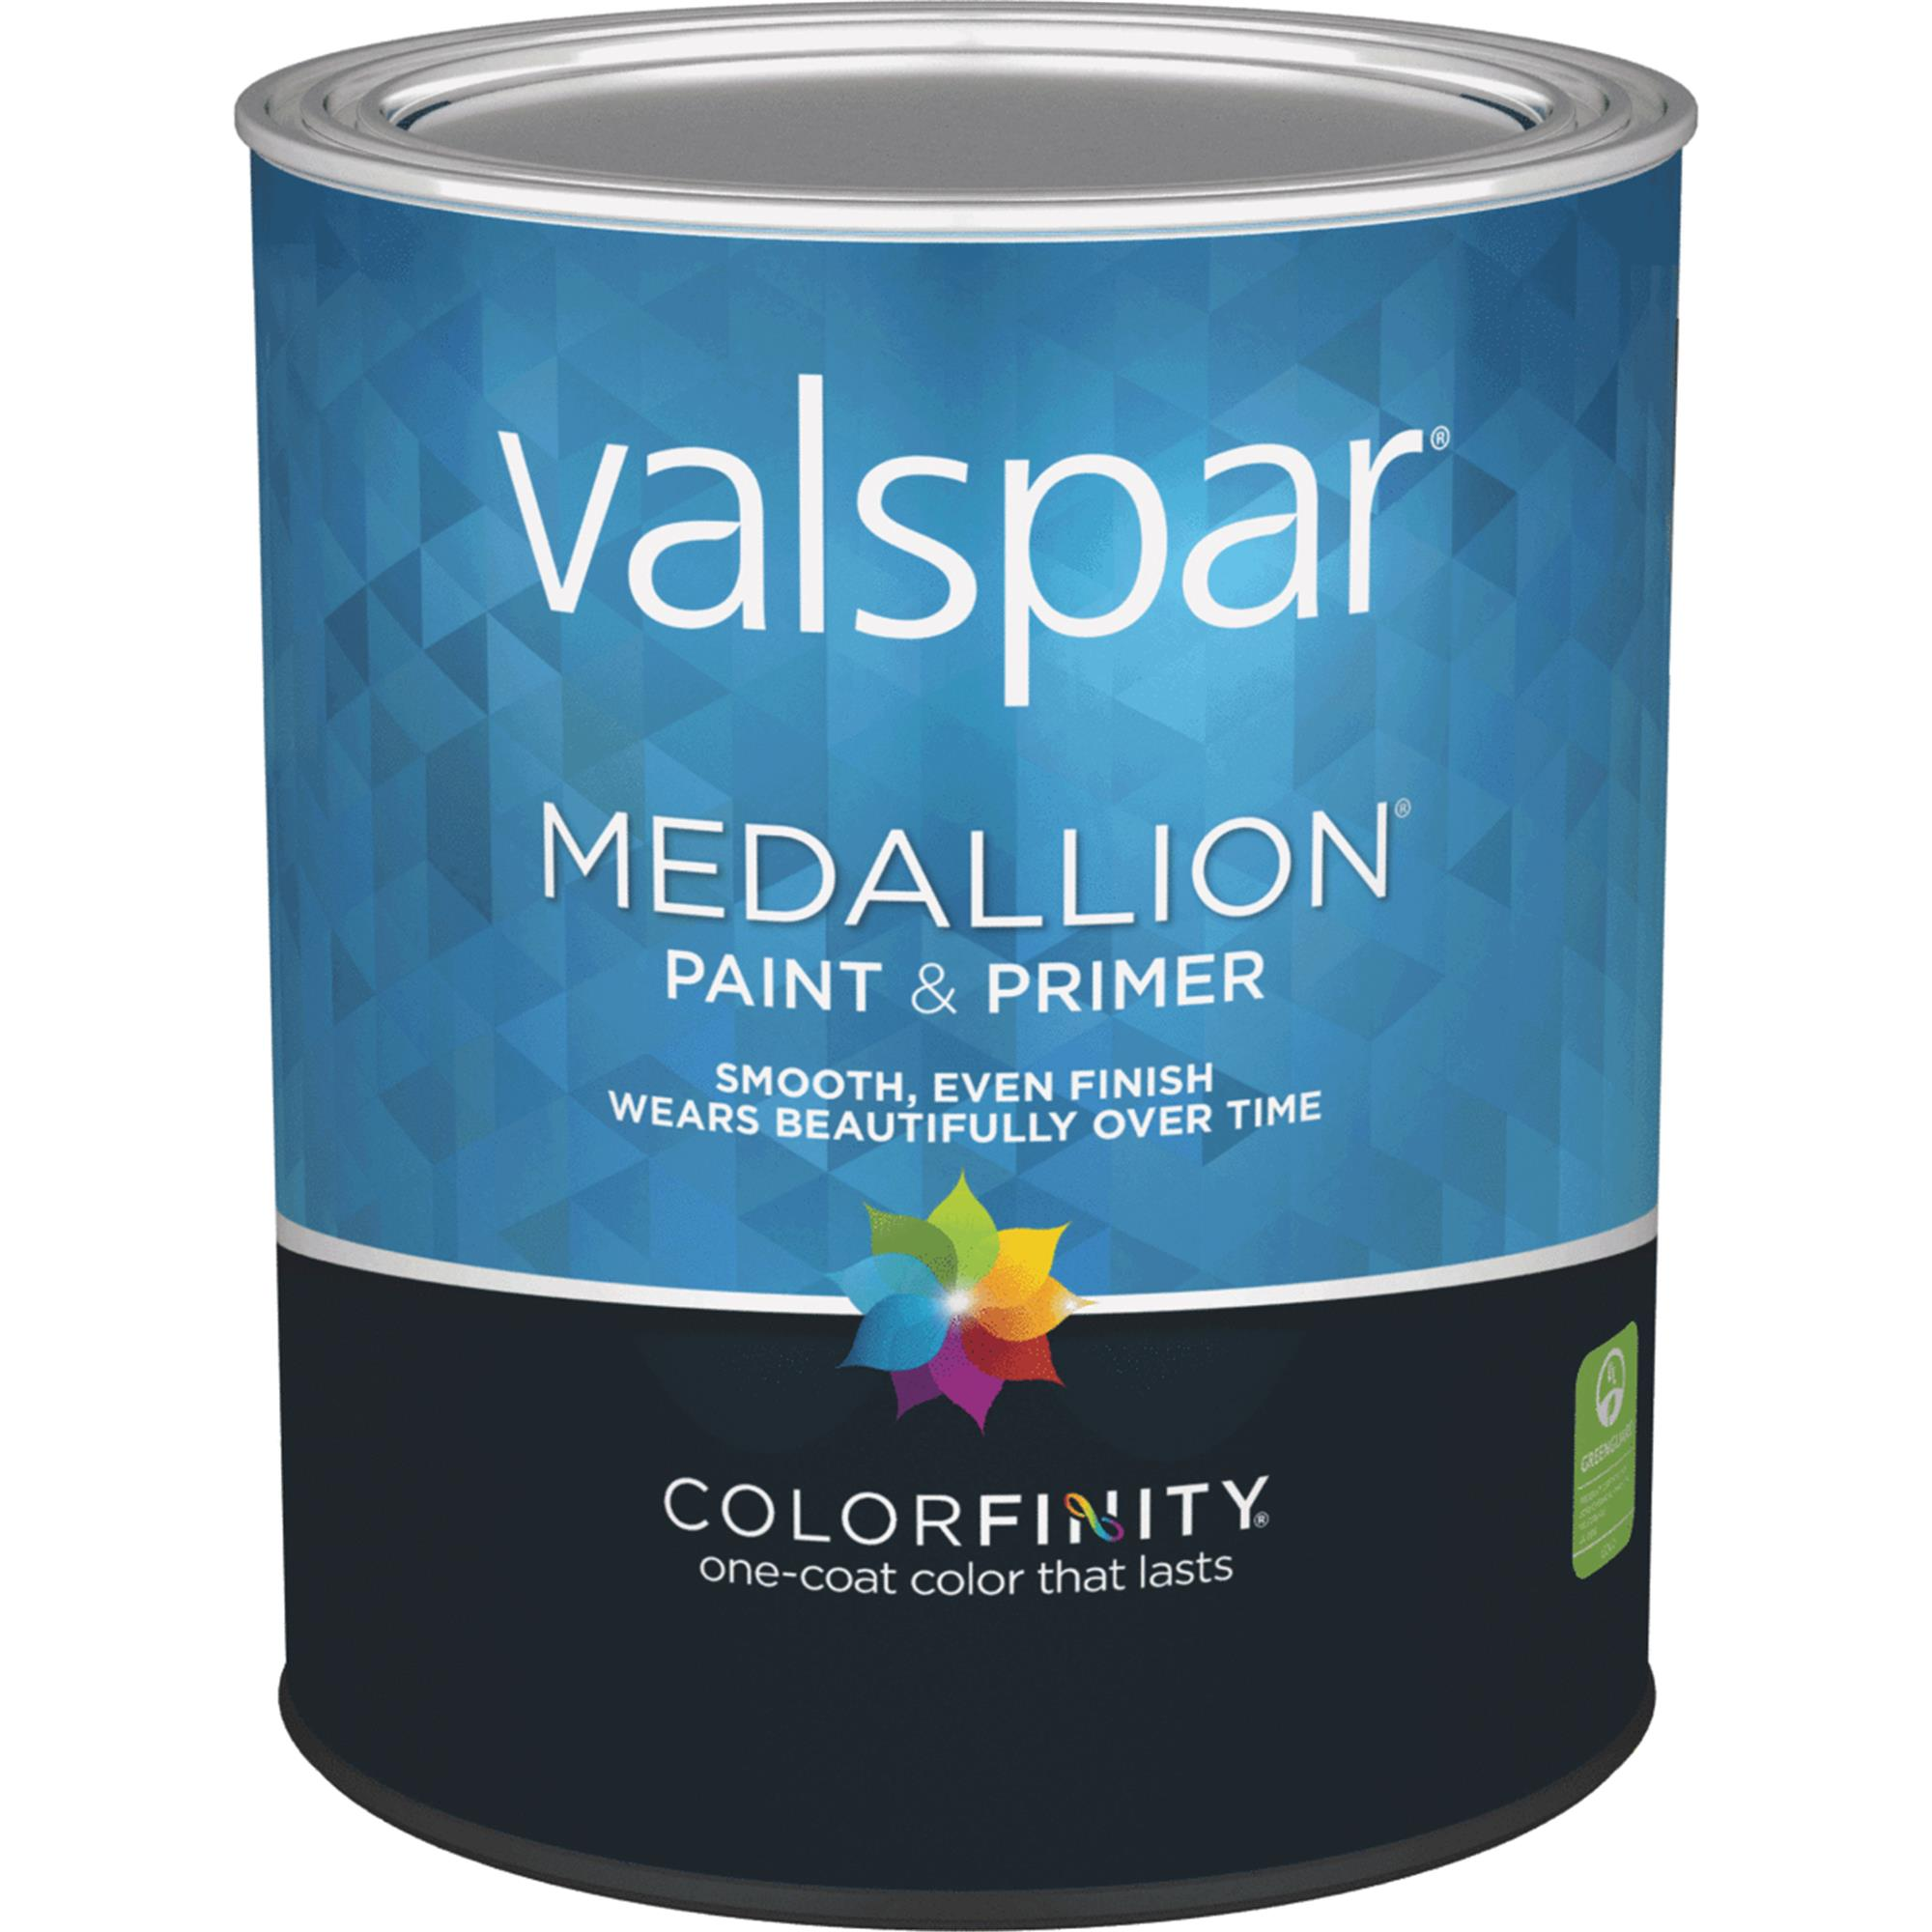 Valspar Medallion 100% Acrylic Paint & Primer Flat Interior Wall Paint